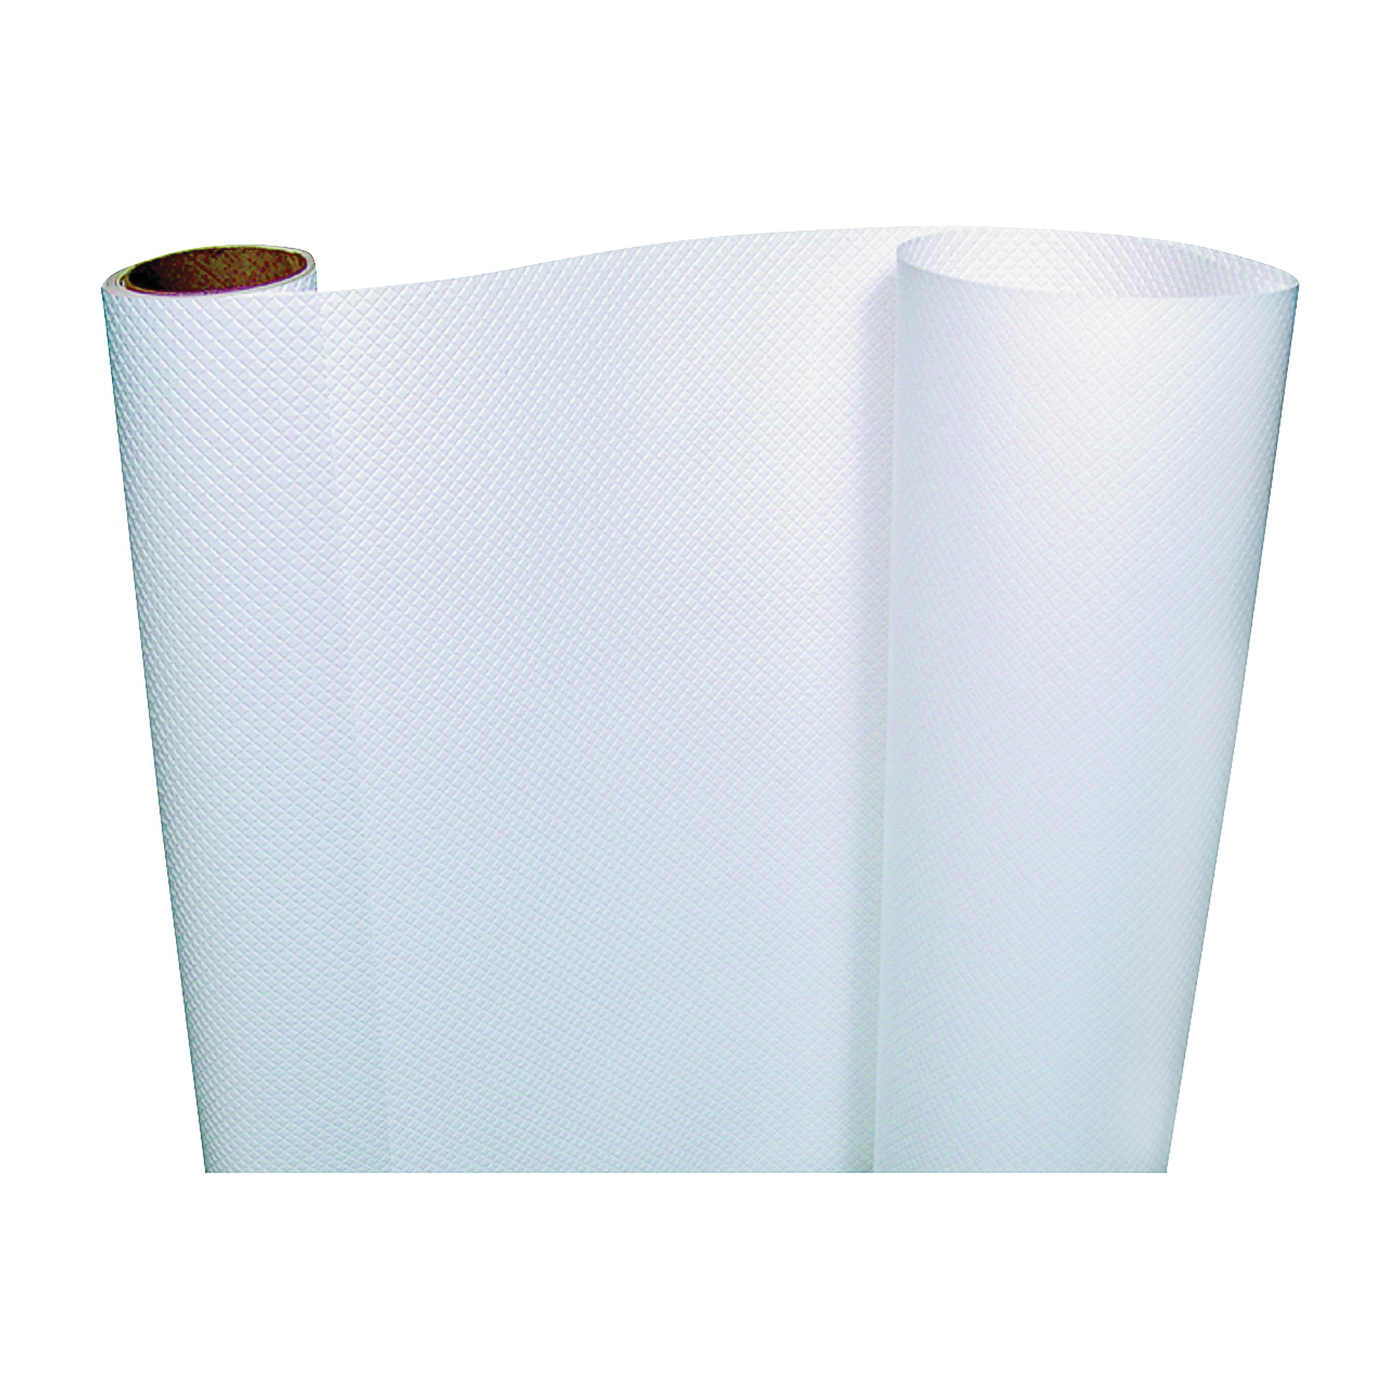 Picture of Con-Tact 05F-C5T20-06 Embossed Shelf Liner, 5 ft L, 20 in W, Vinyl, Clear